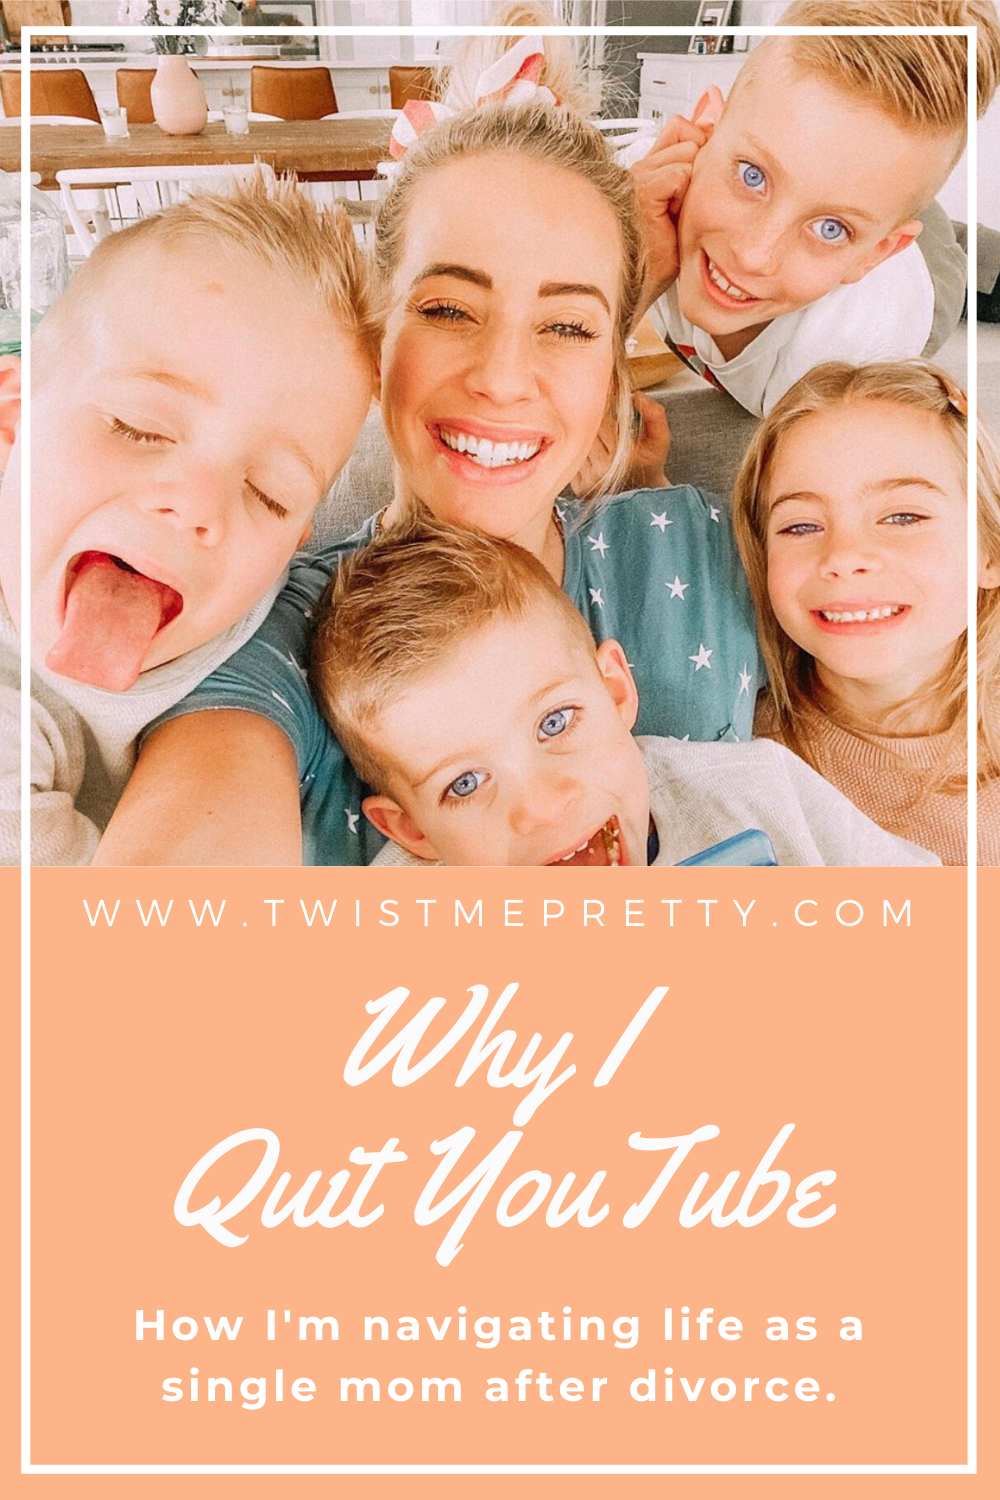 Why I quit YouTube--How I'm navigating life as a single mom after divorce. www.TwistMePretty.com